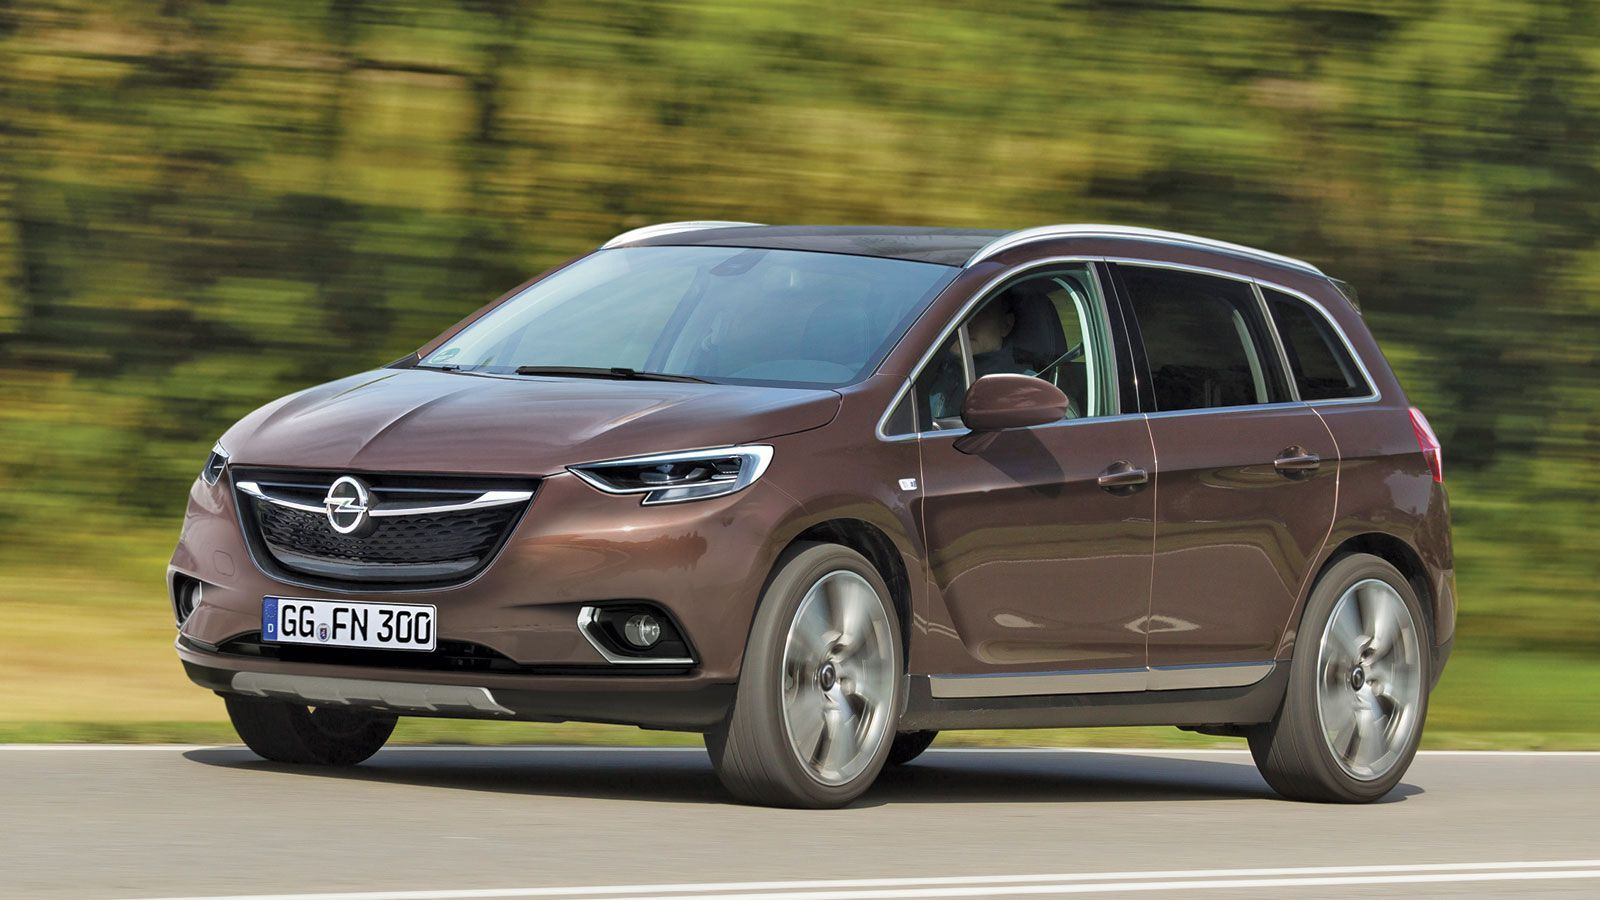 A New Opel Flagship Suv To Debut Before The End Of 2020 A New Flagship Suv Will Probably Be Launched By Gm S European Brand Opel Meant To R New Suv Opel Suv